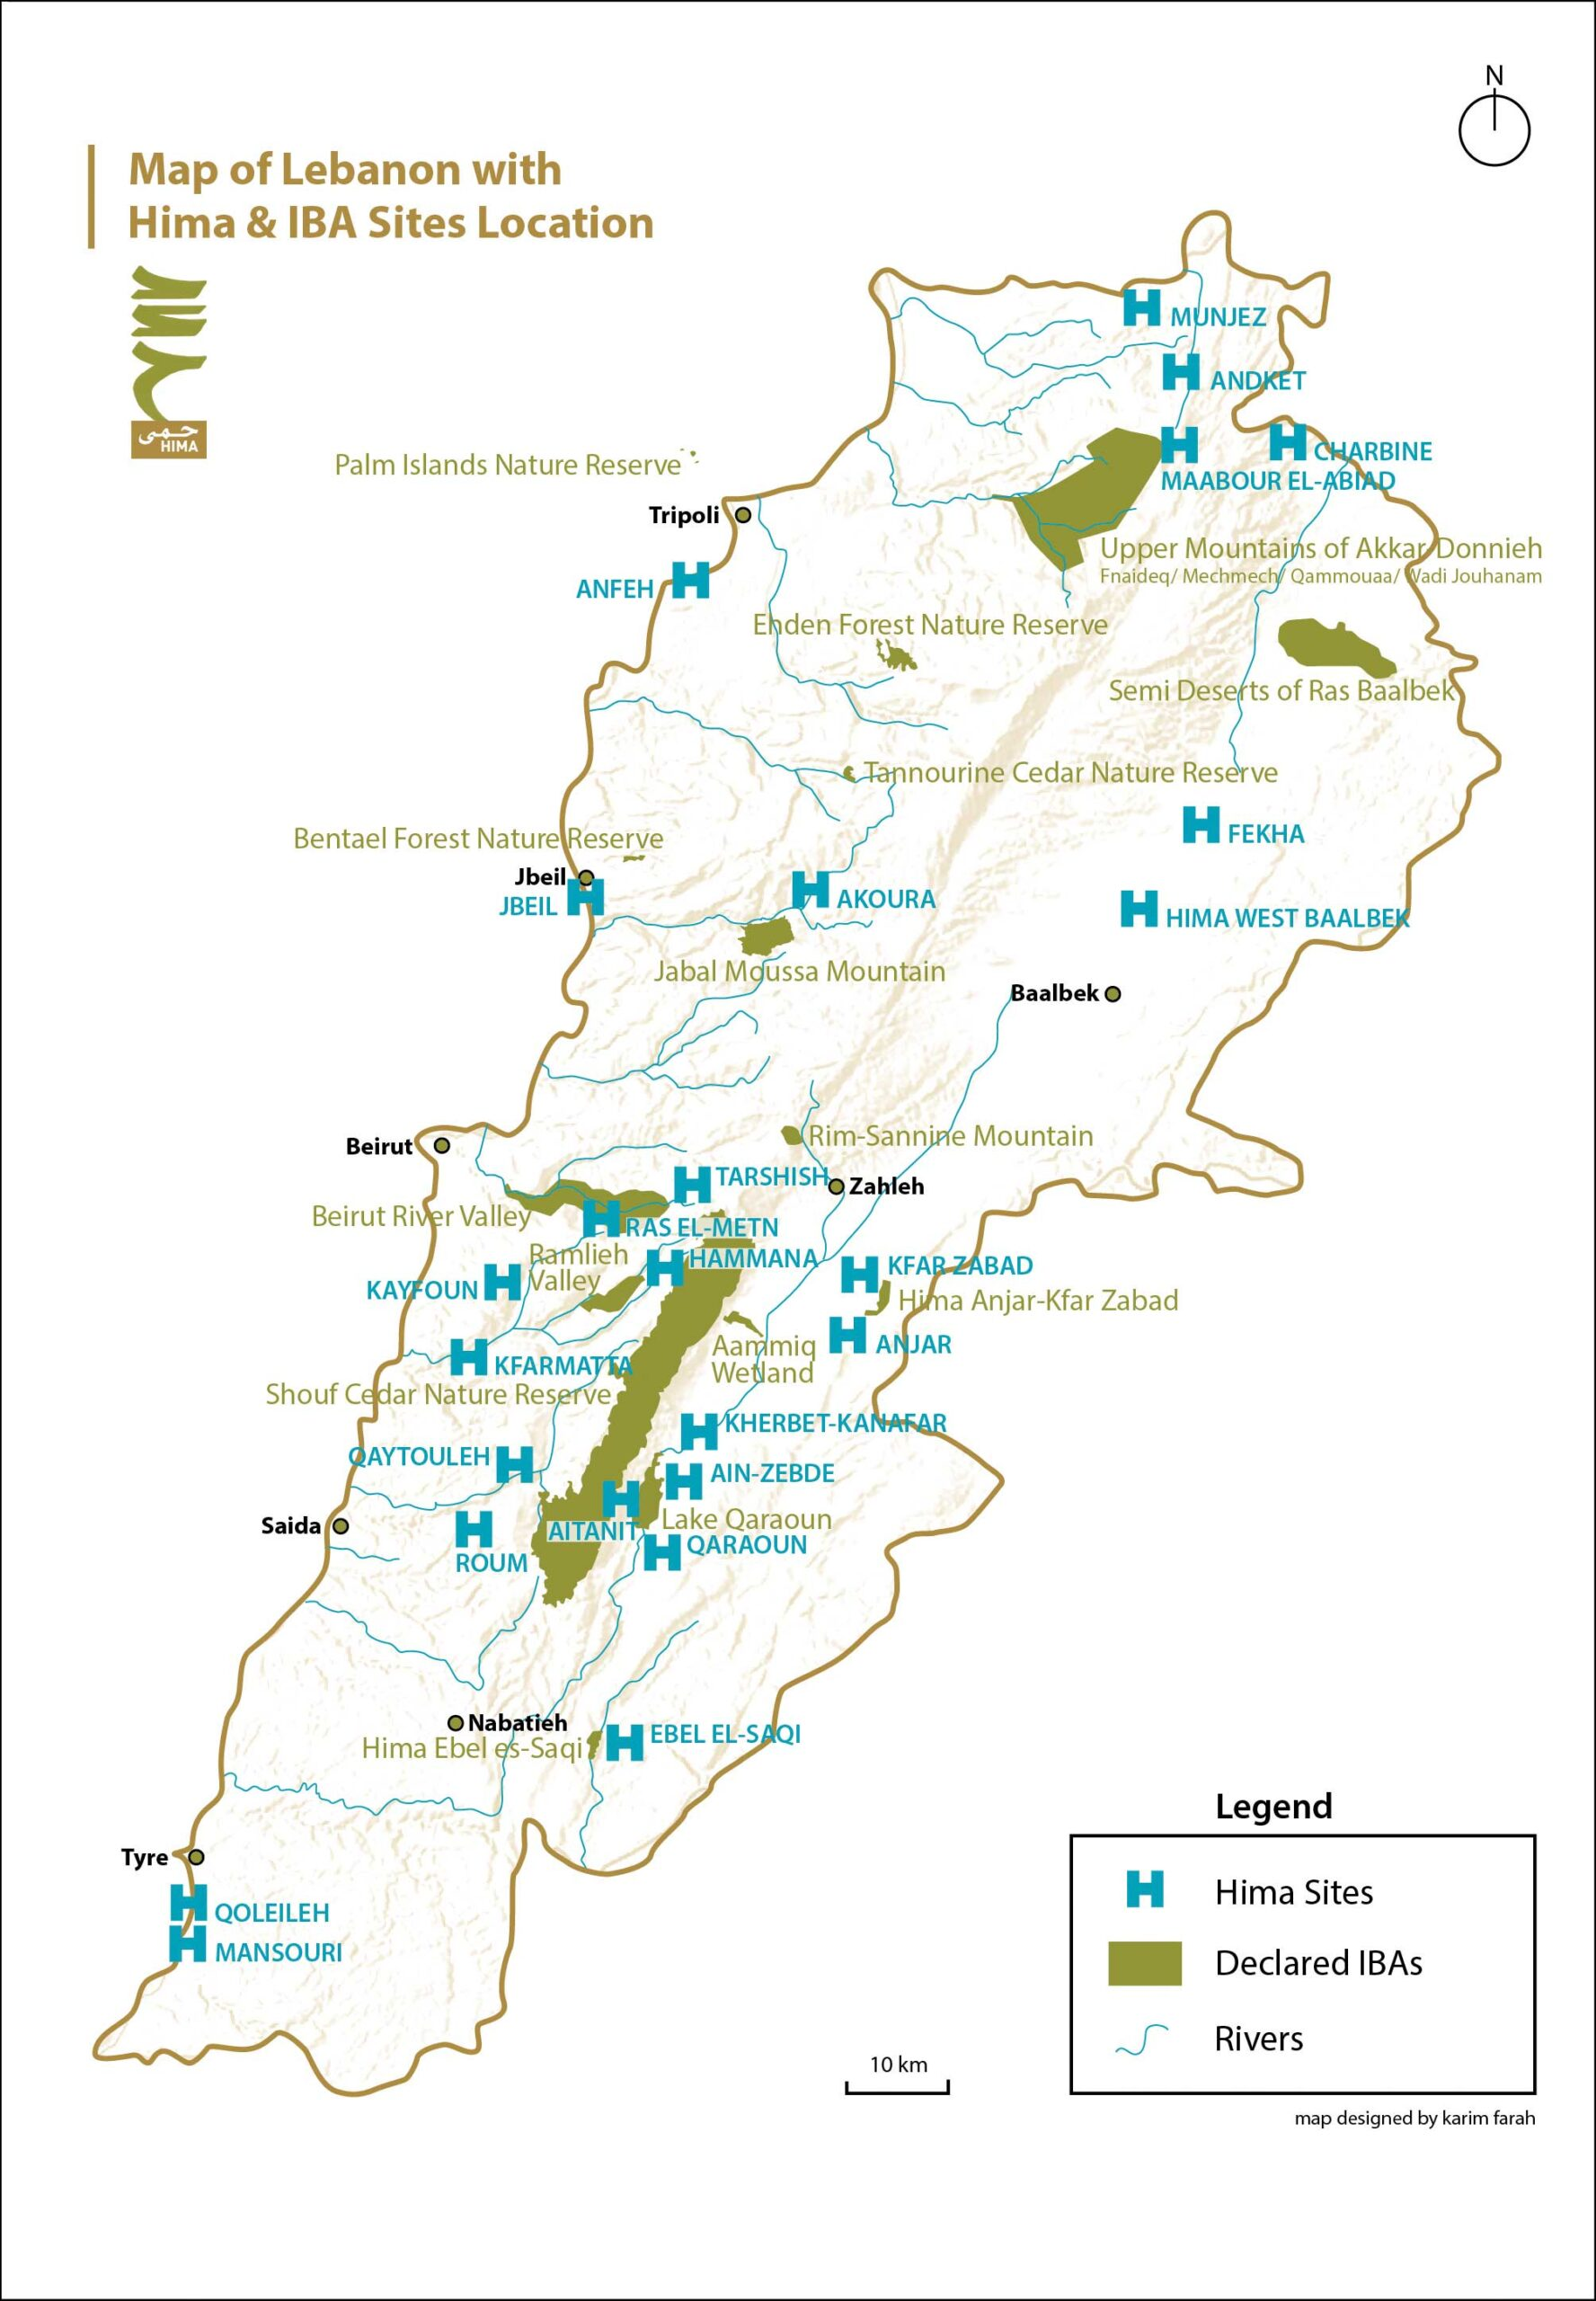 Map of Lebanon with Hima & IBA Sites Location   West Bekaa & Mount Lebanon Cultural Landscapes